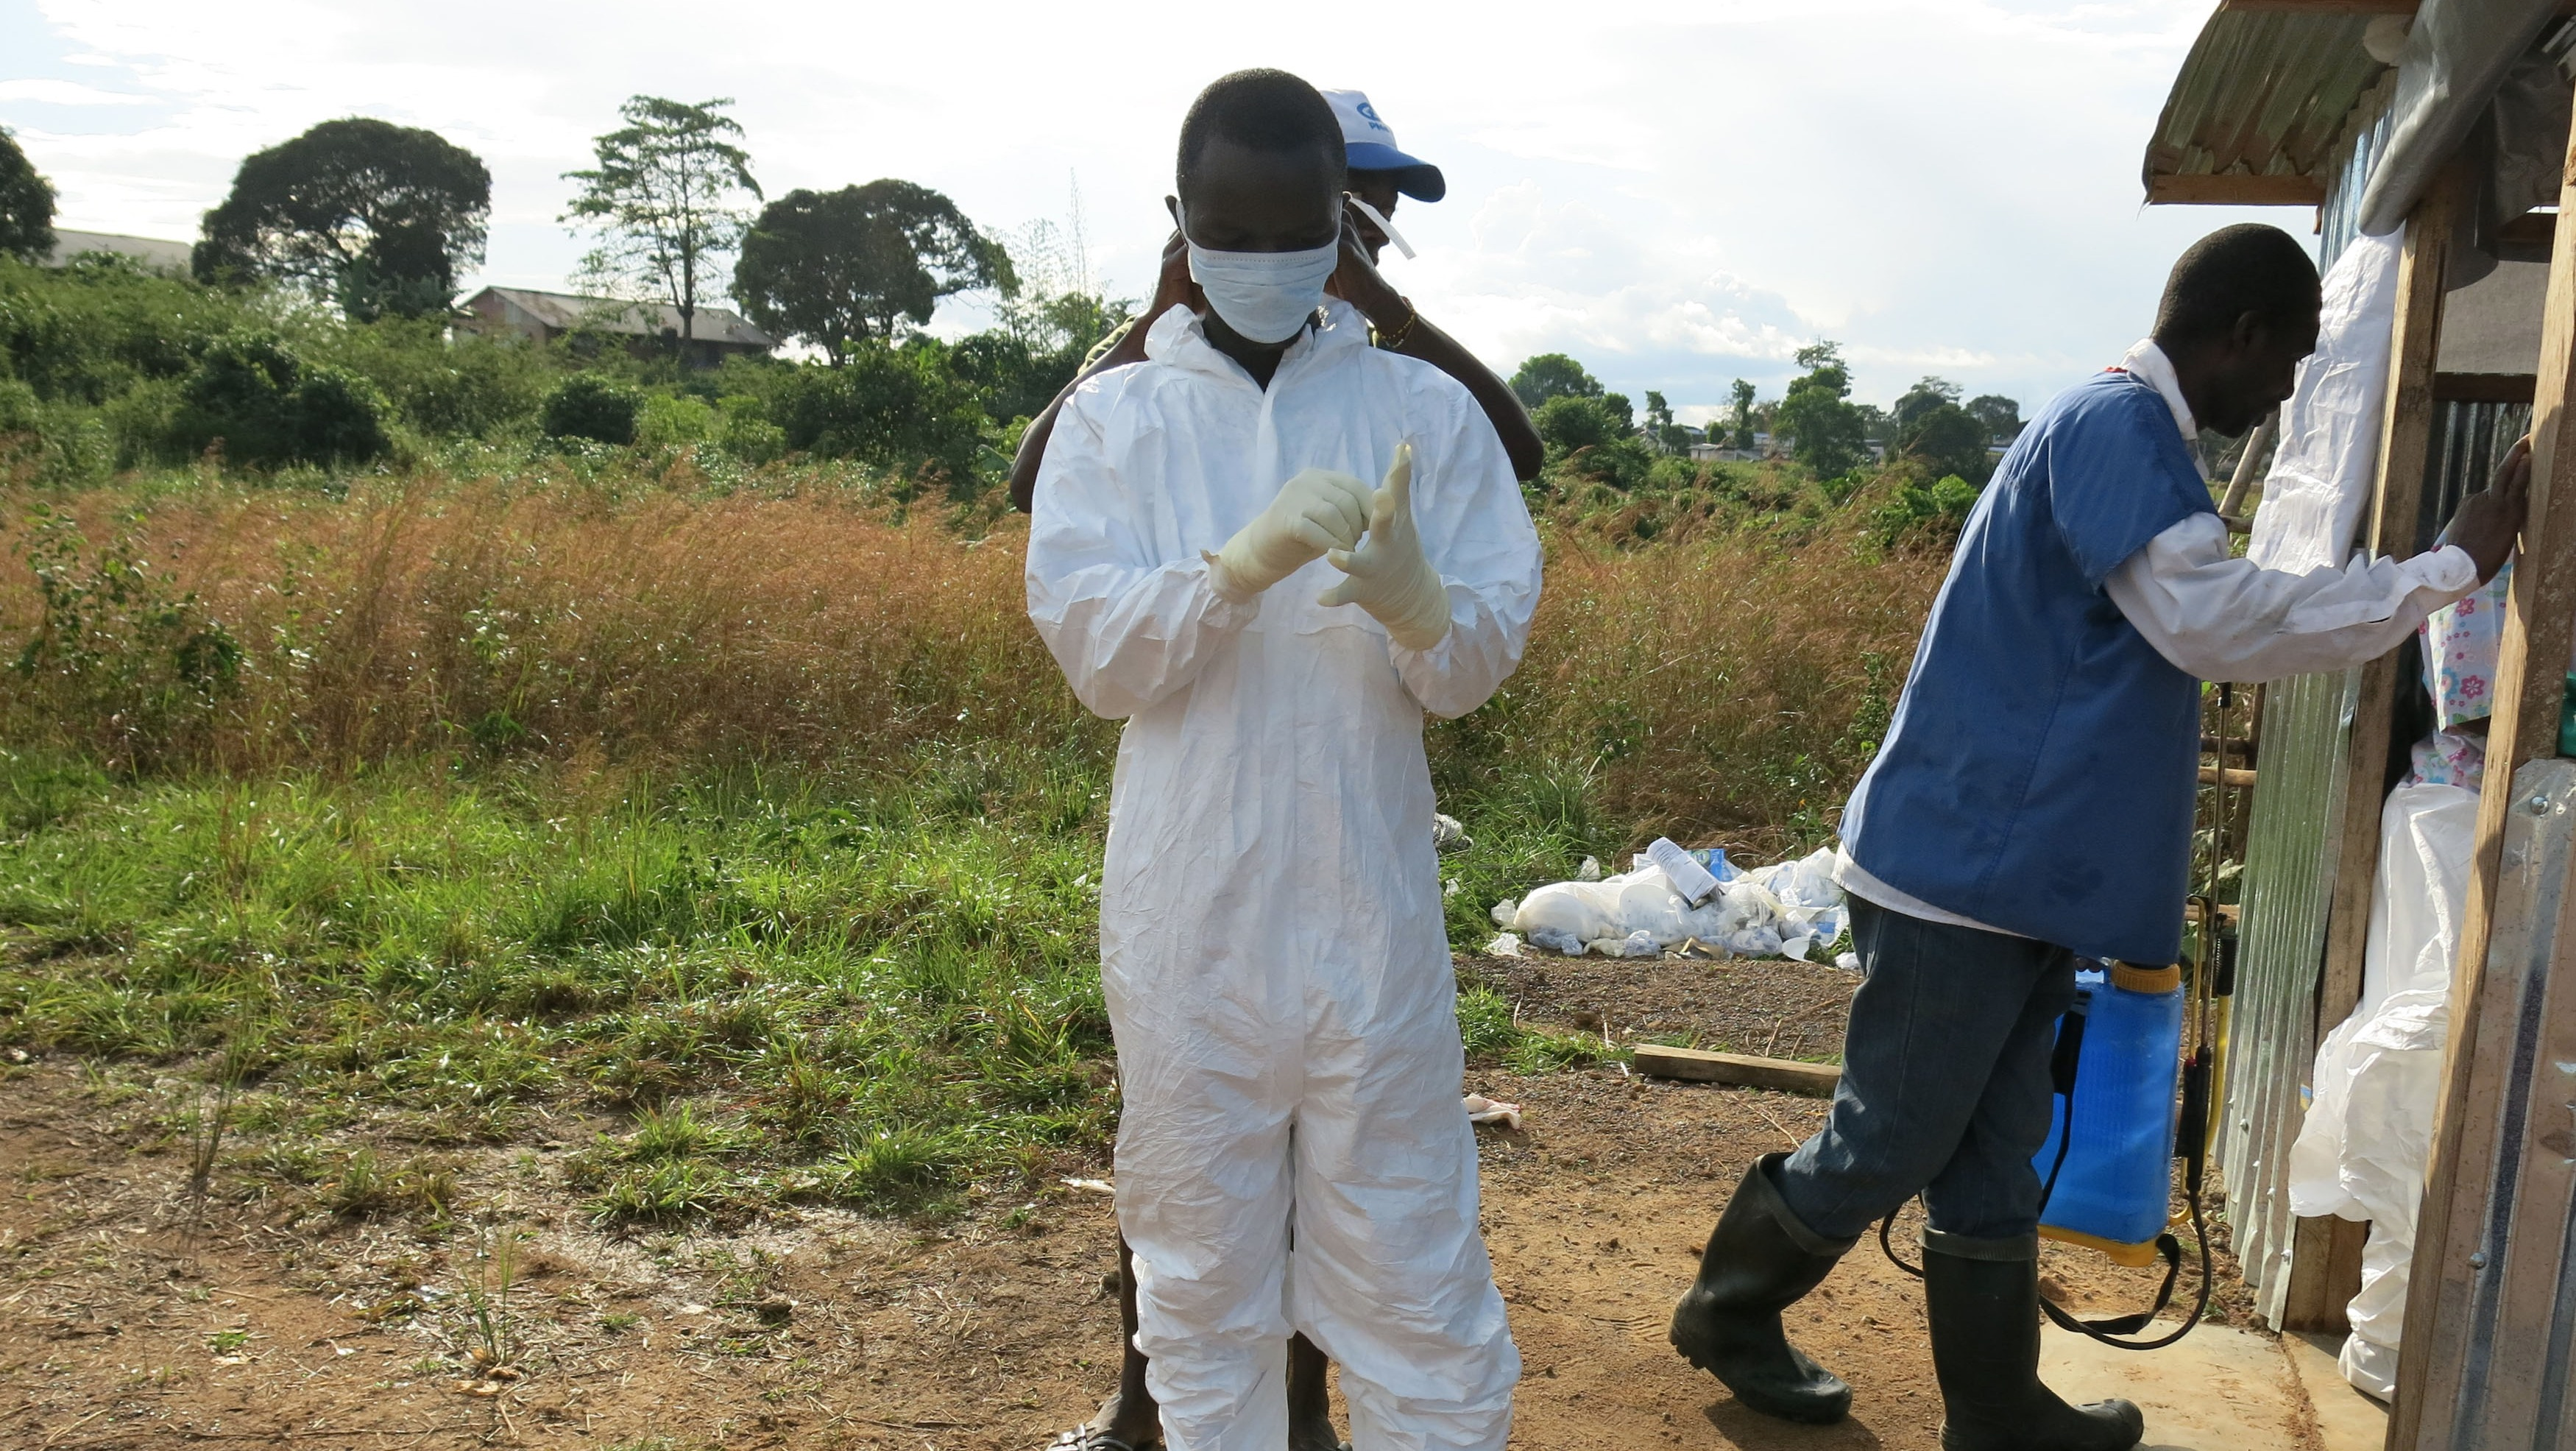 Ebola survivor Tejani Golafelay prepares to go into the Bomi Ebola Treatment Unit in Liberia to help patients.